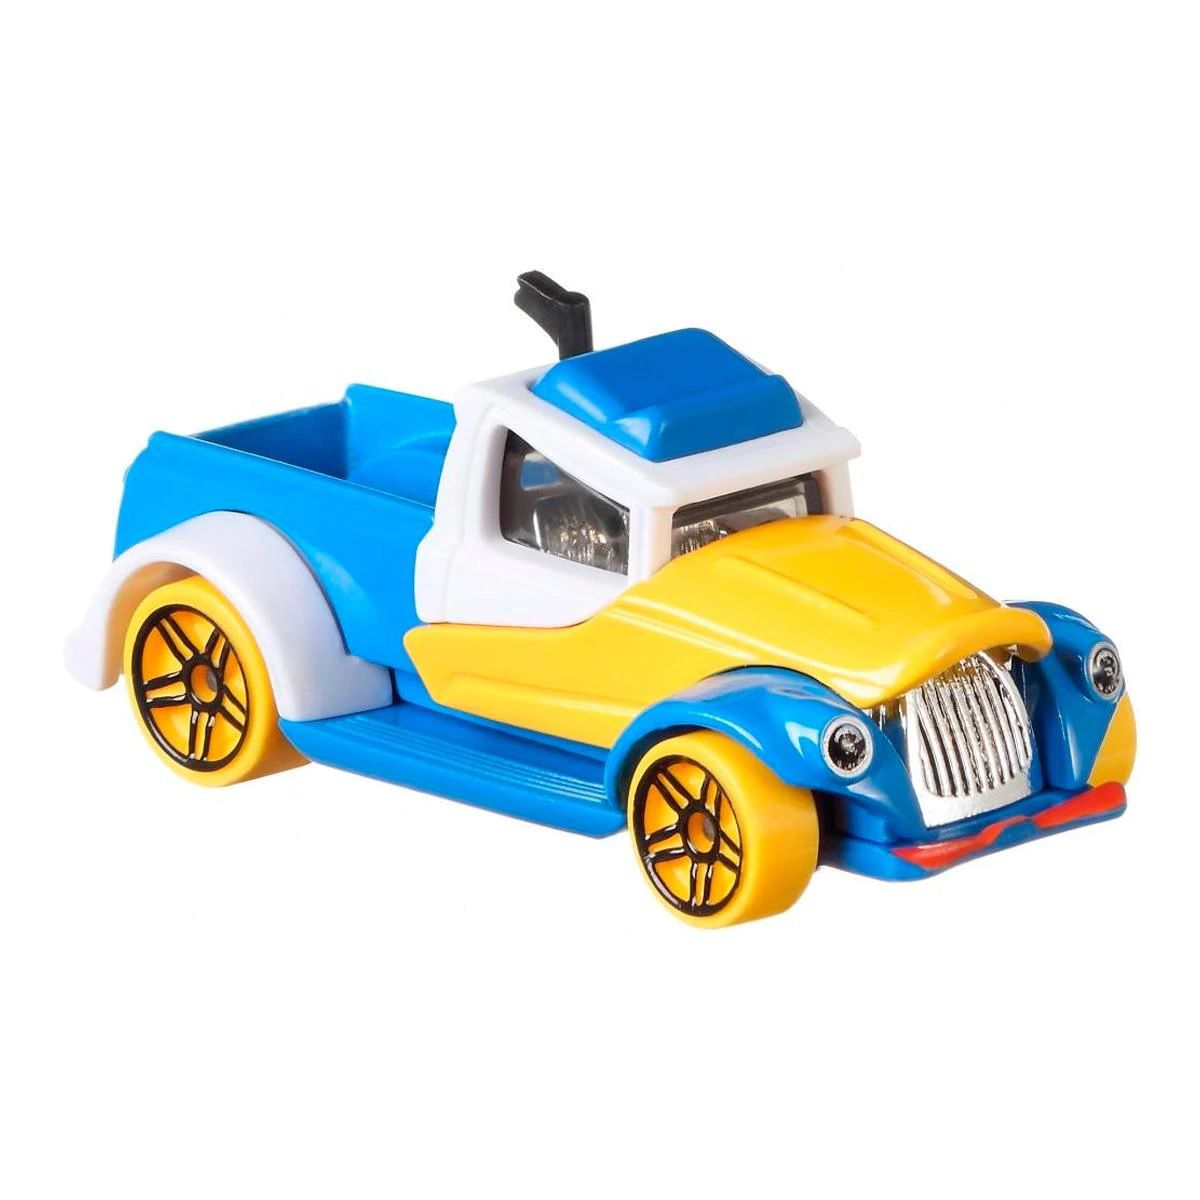 Carrinho Hot Wheels Pato Donald: Disney (Series 4) - Mattel